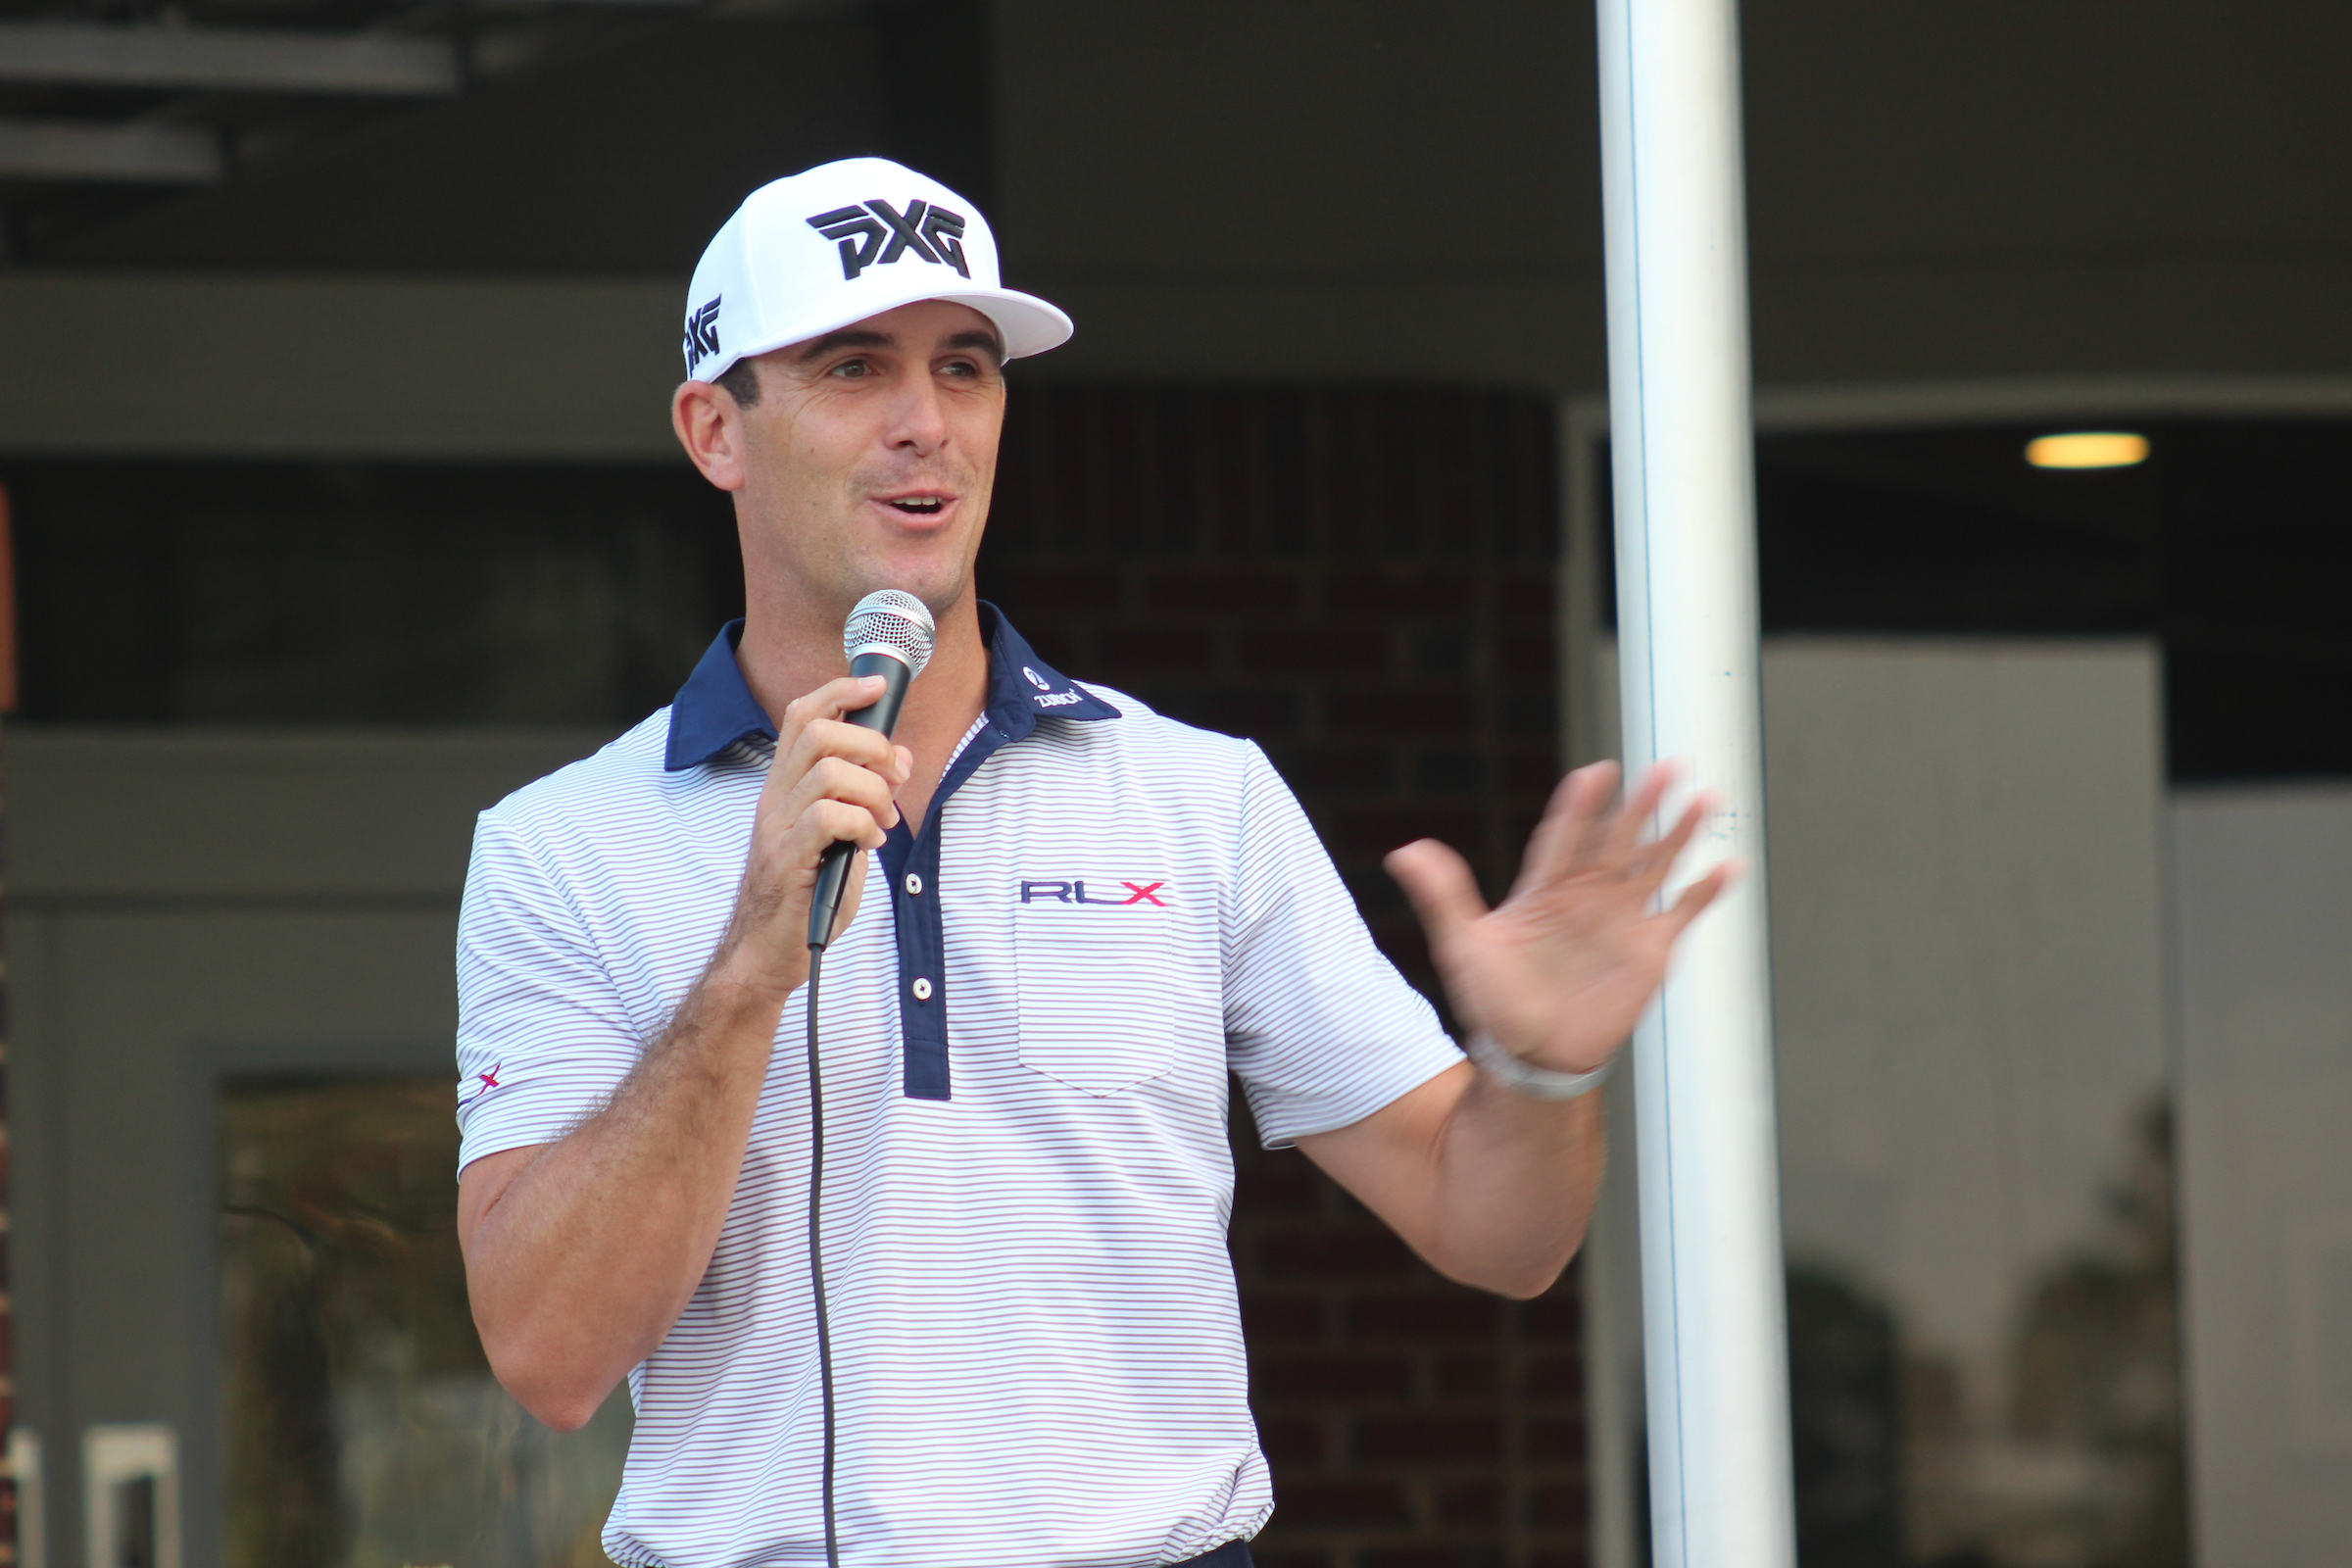 Billy Horschel - 2017 - Billy Horschel Junior (6).jpg